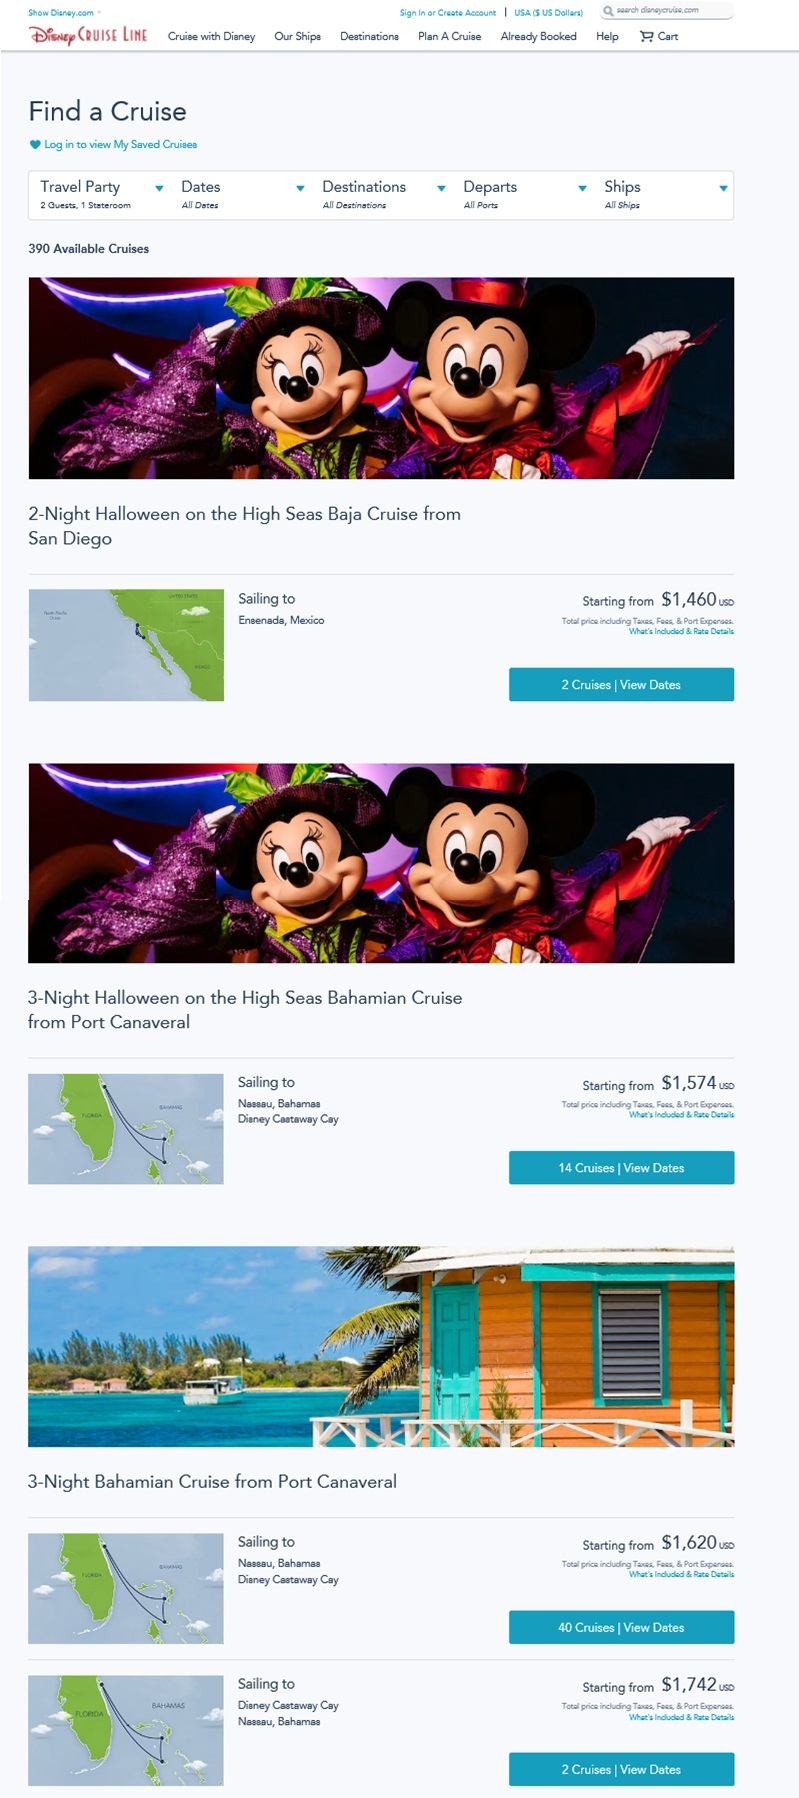 Disney_Cruise_plan-1.jpg